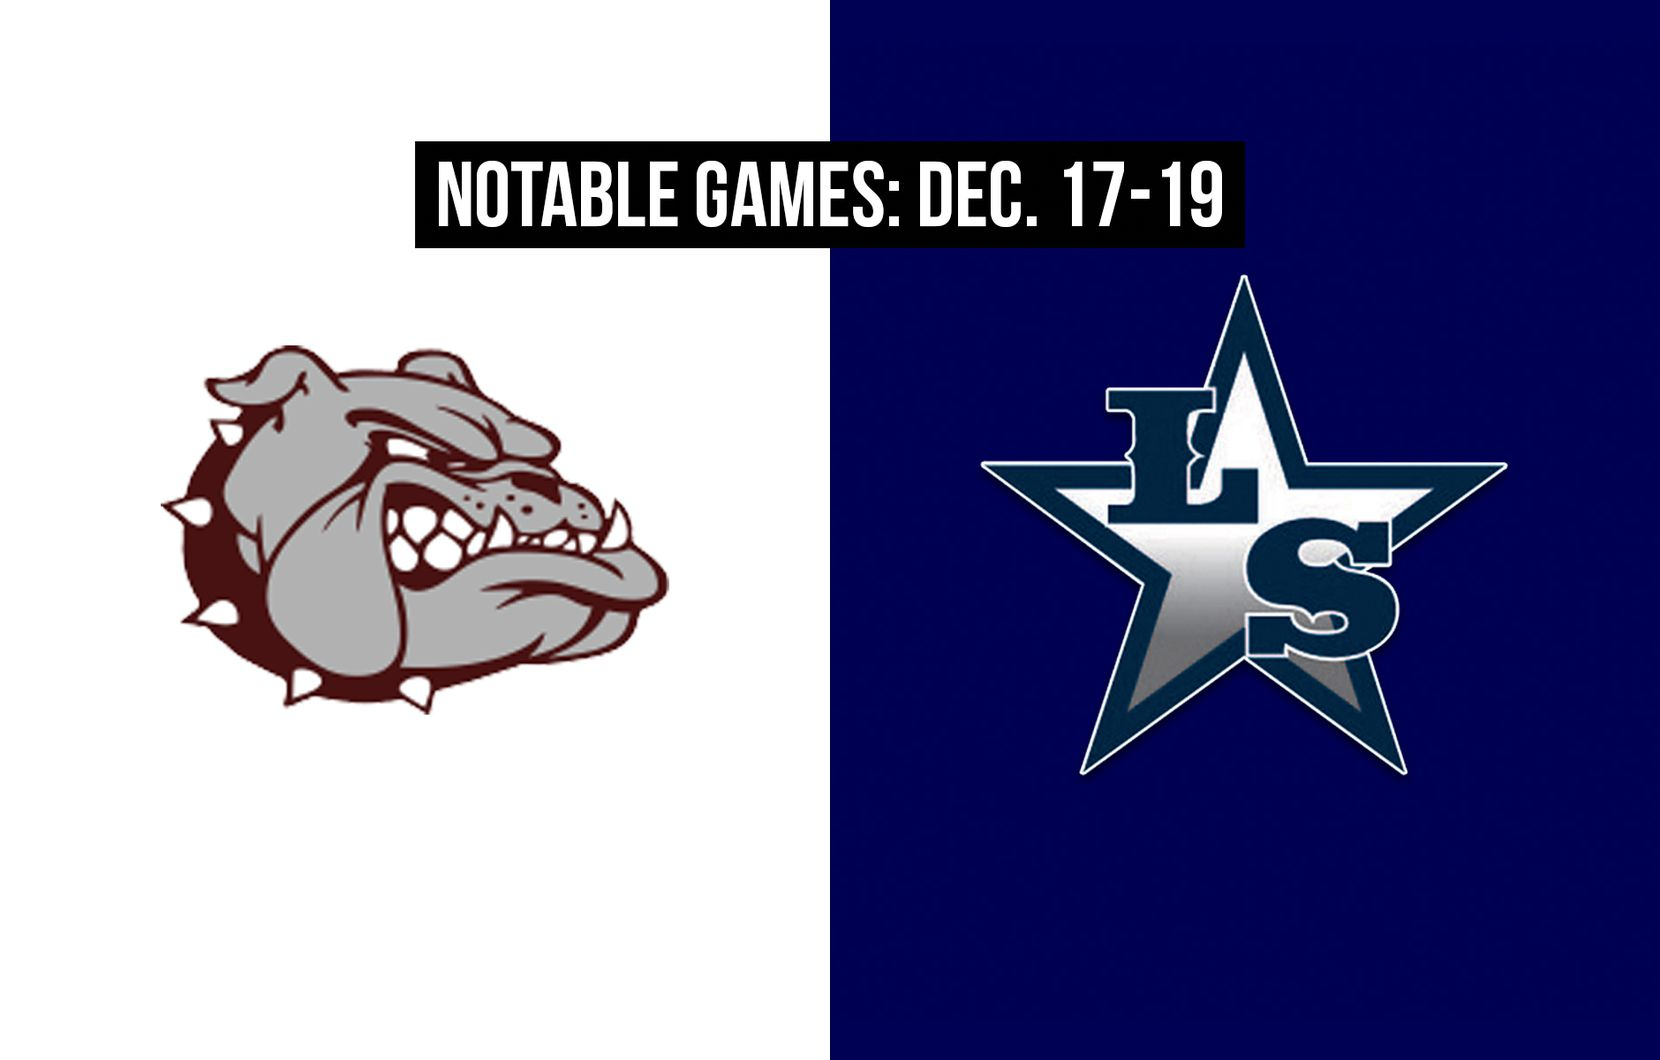 Notable games for the week of Dec. 17-19 of the 2020 season: Magnolia vs. Frisco Lone Star.